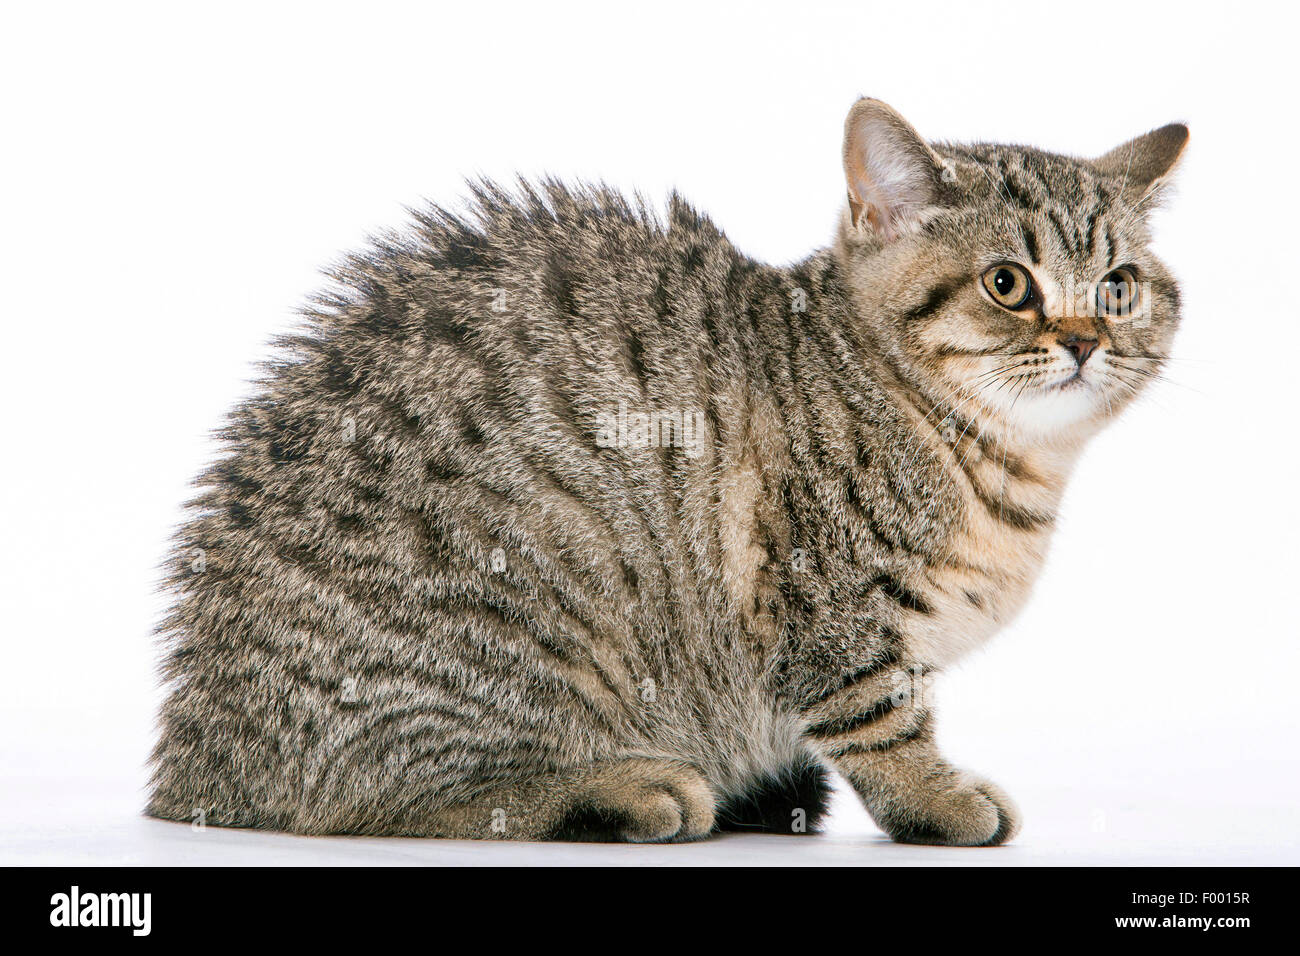 British Shorthair (Felis silvestris f. catus), little striped kitten arching one's back - Stock Image